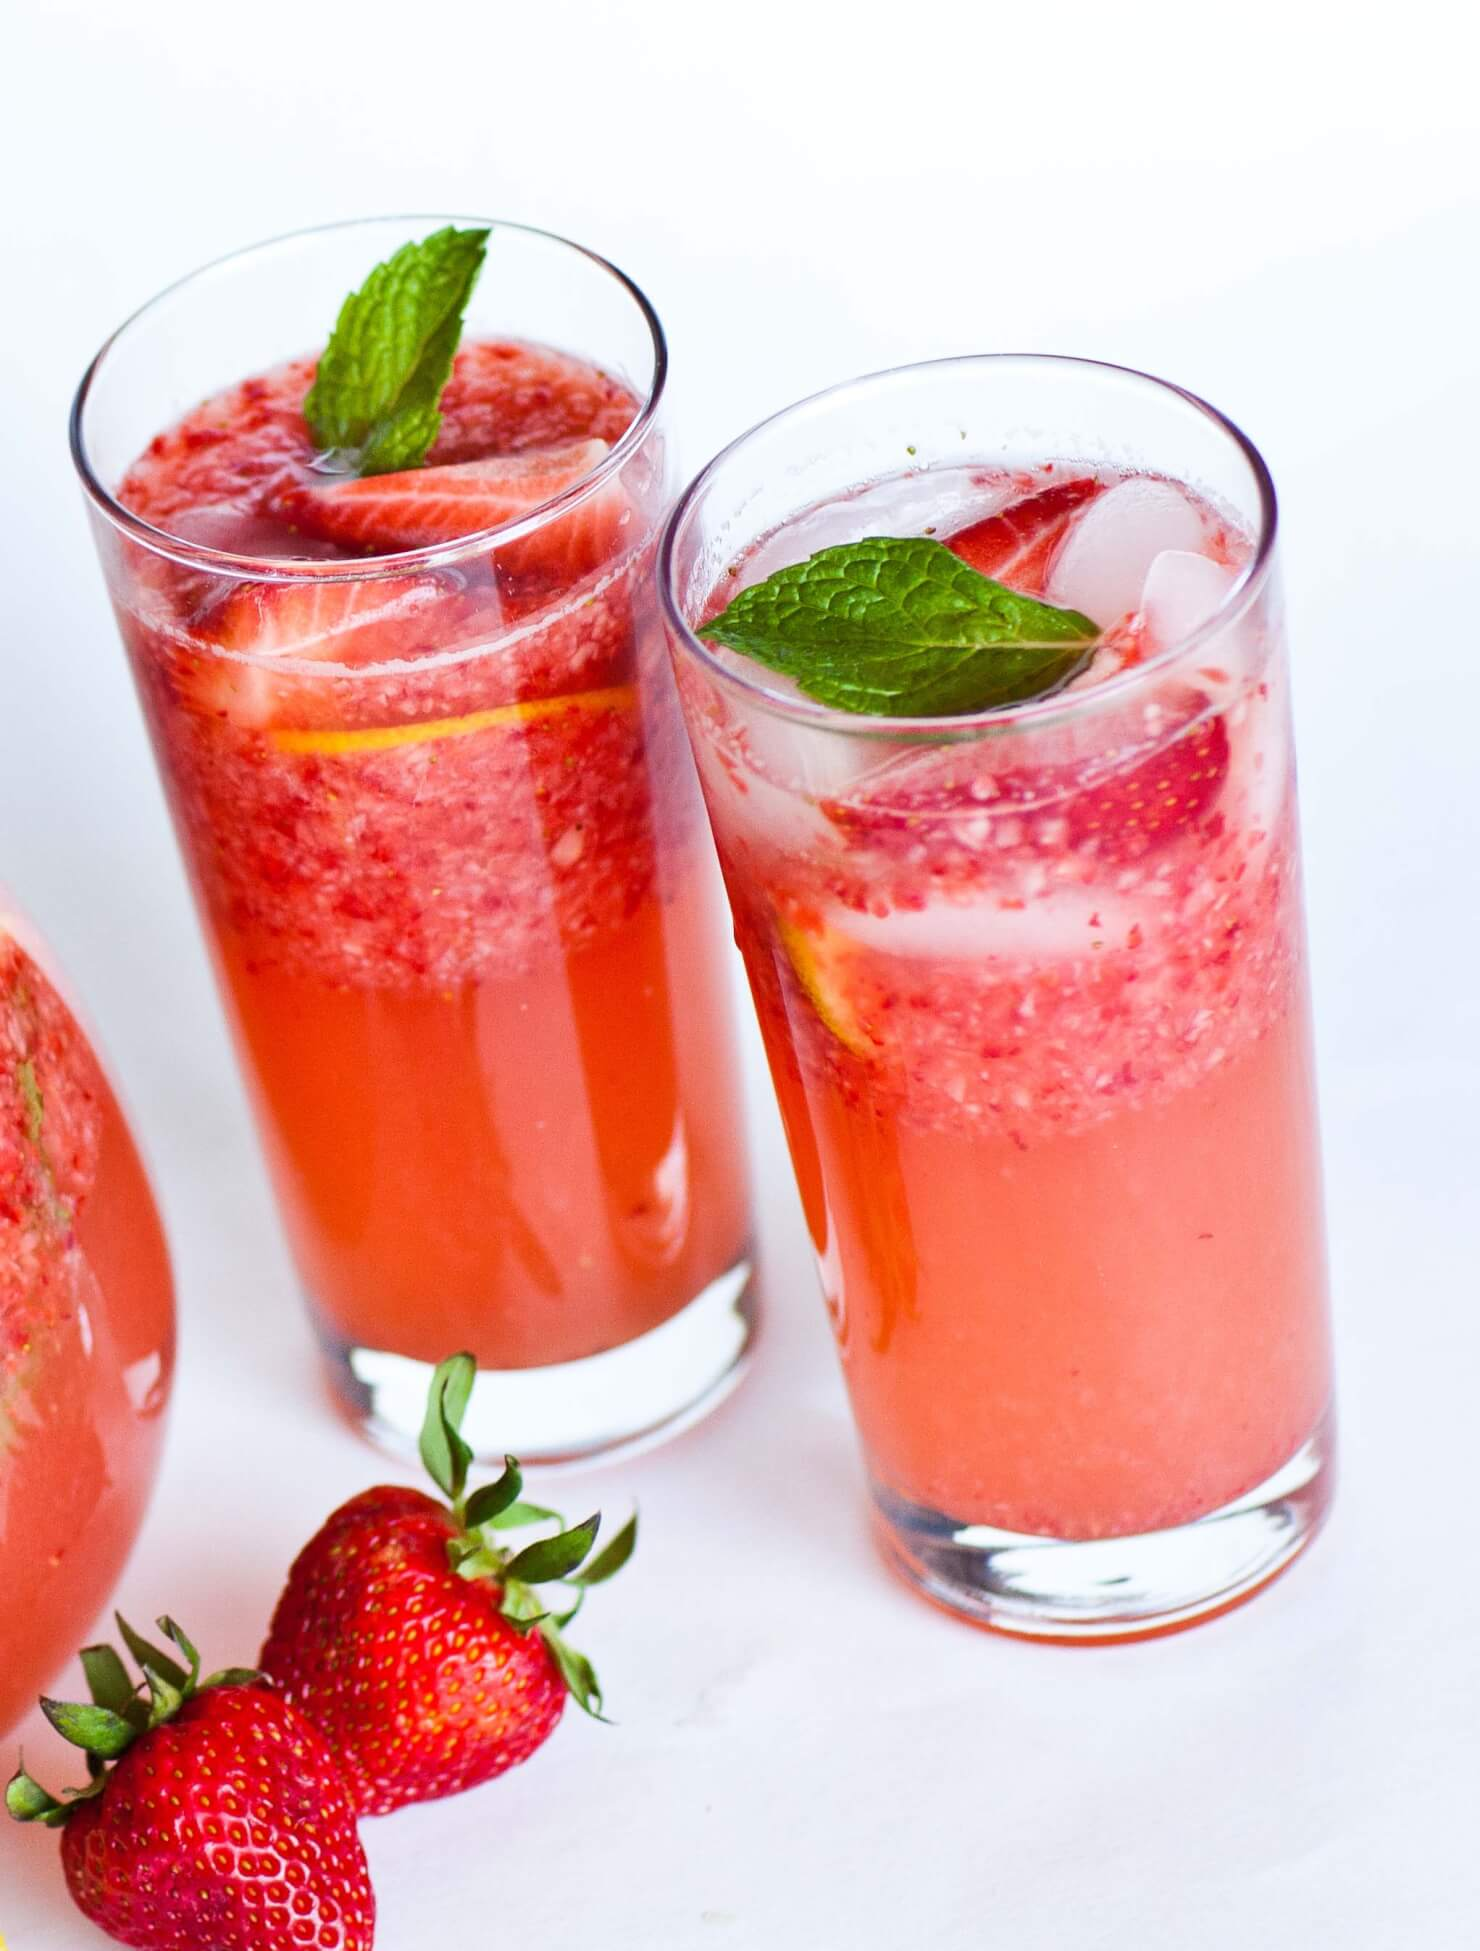 strawberry lemonade in glasses with mint leaves